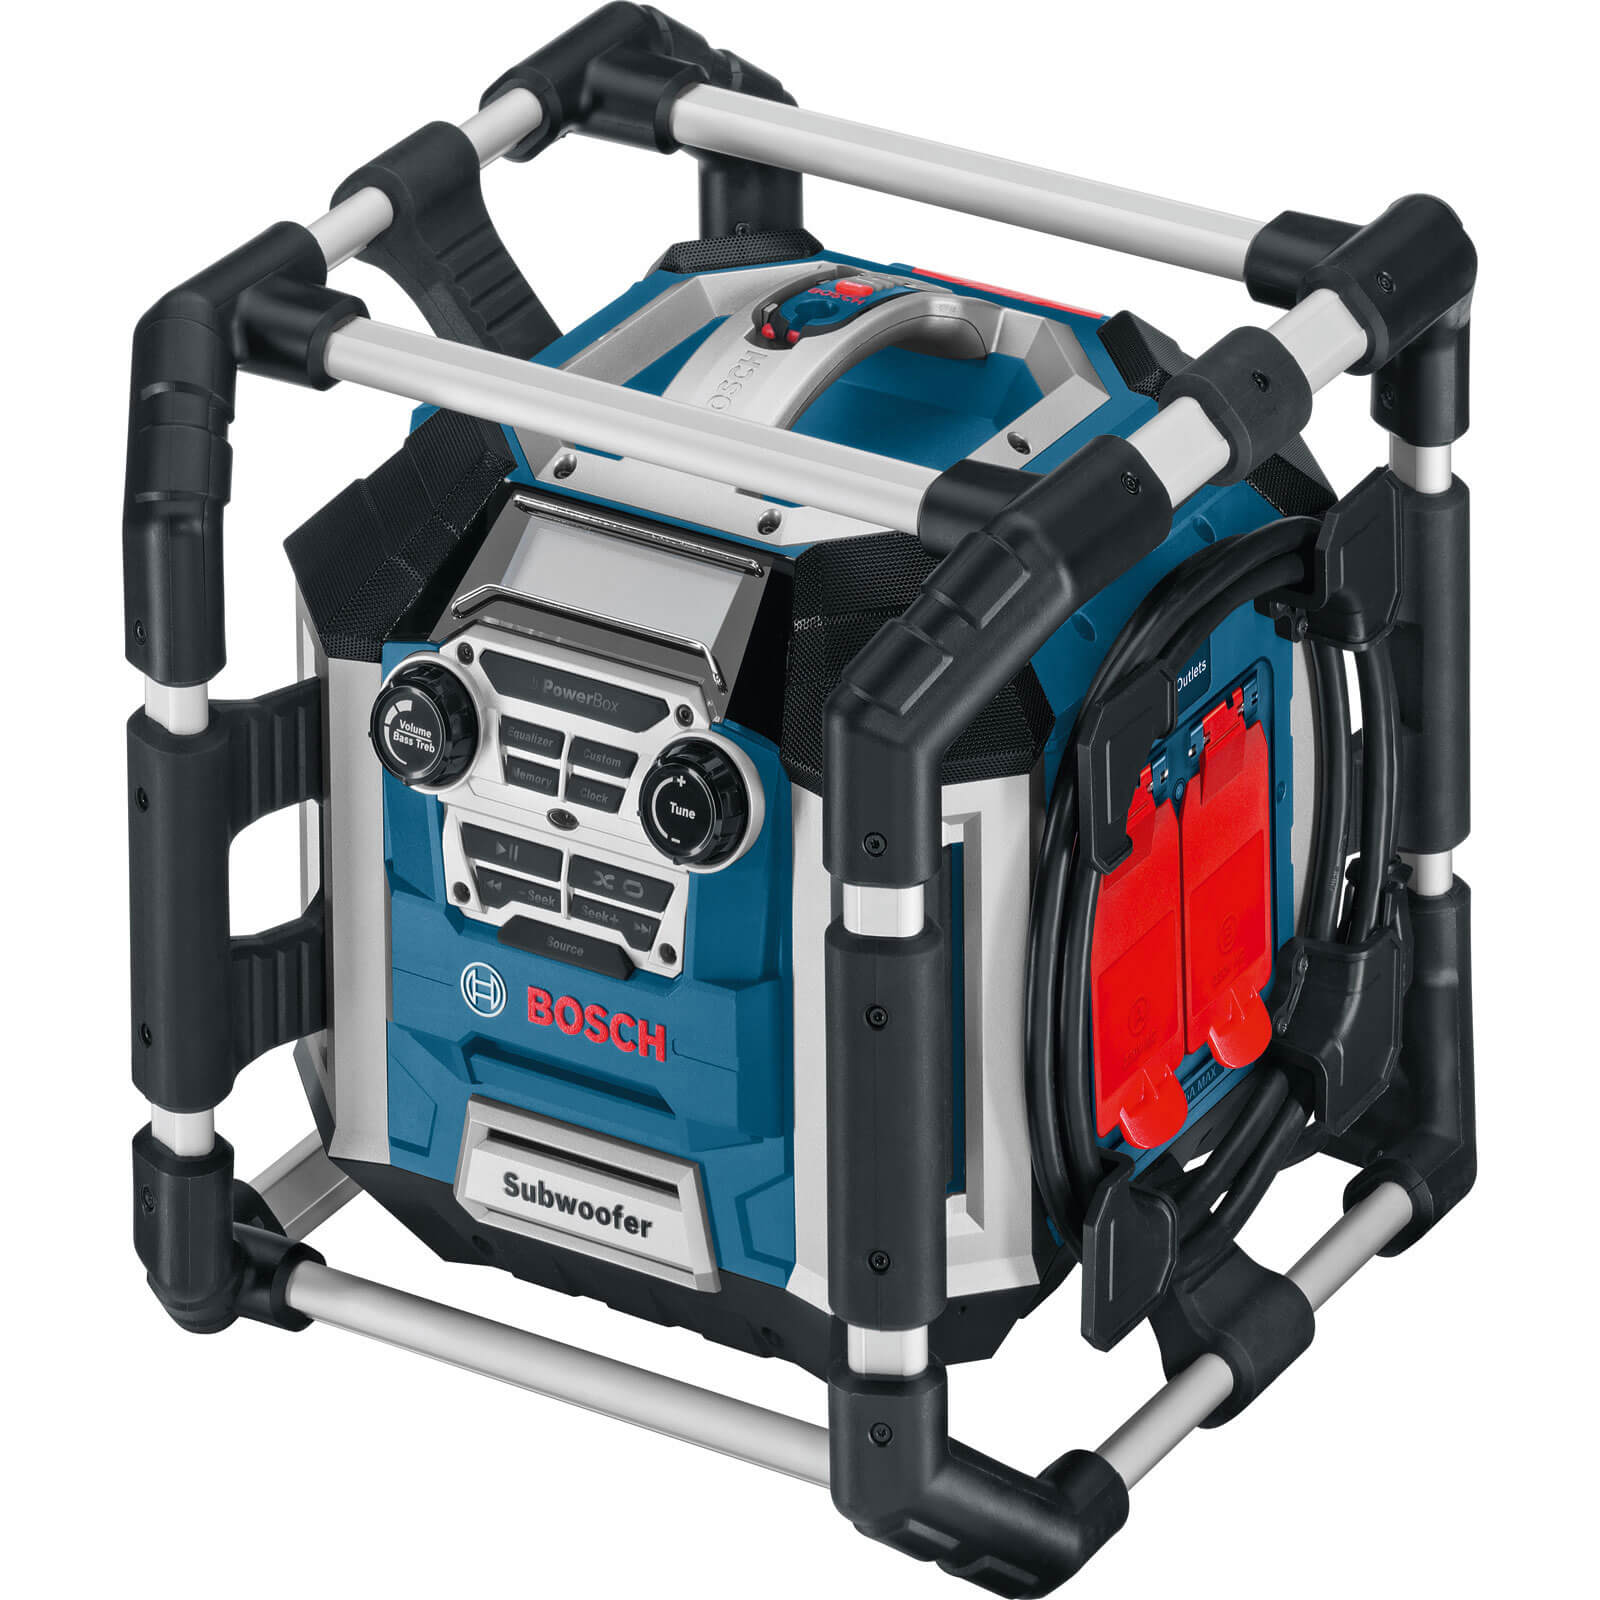 Bosch POWERBOX GML 50 Radio, MP3 Speakers, Battery Charger & Powerbox with 2 x 240v Sockets Runs off 240v & 14.4 - 18v Lithium Ion Batteries